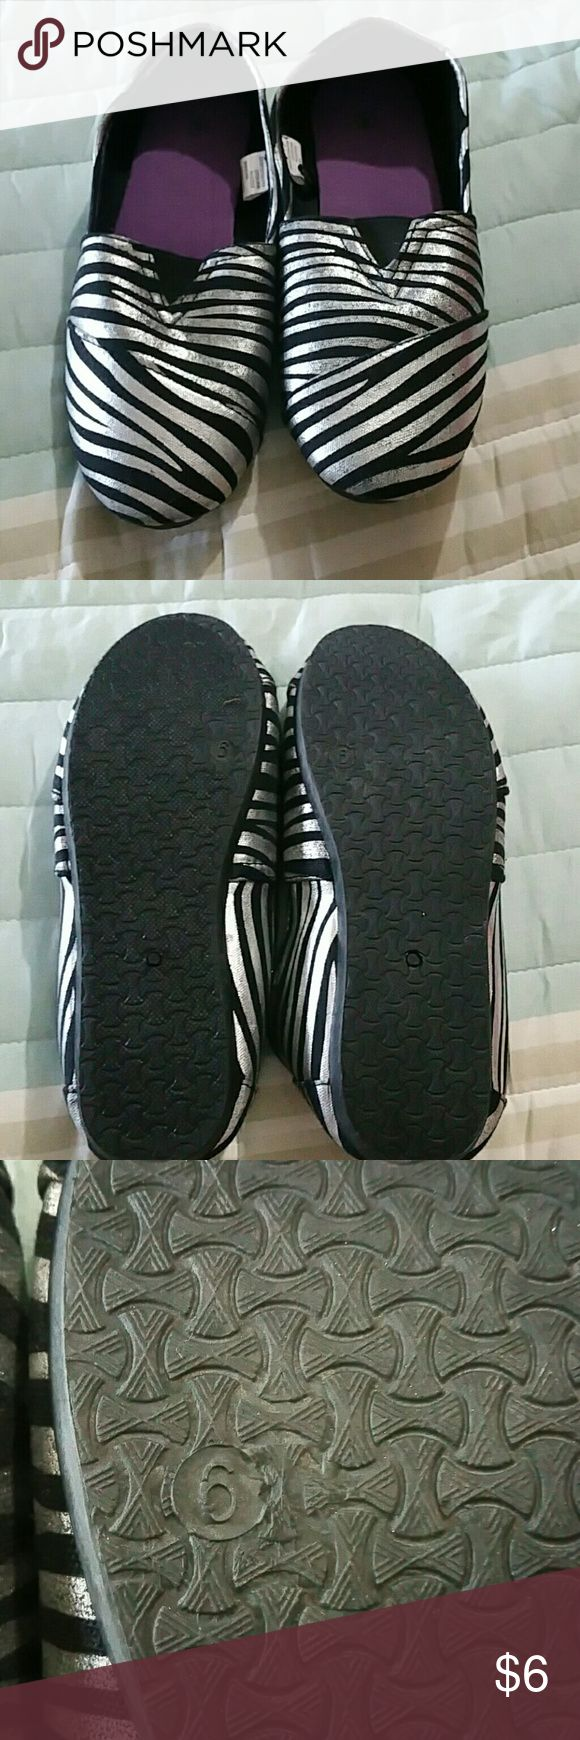 Ladies slip on shoes Simular to TOMS. Brand new without the tags Shoes Flats & Loafers